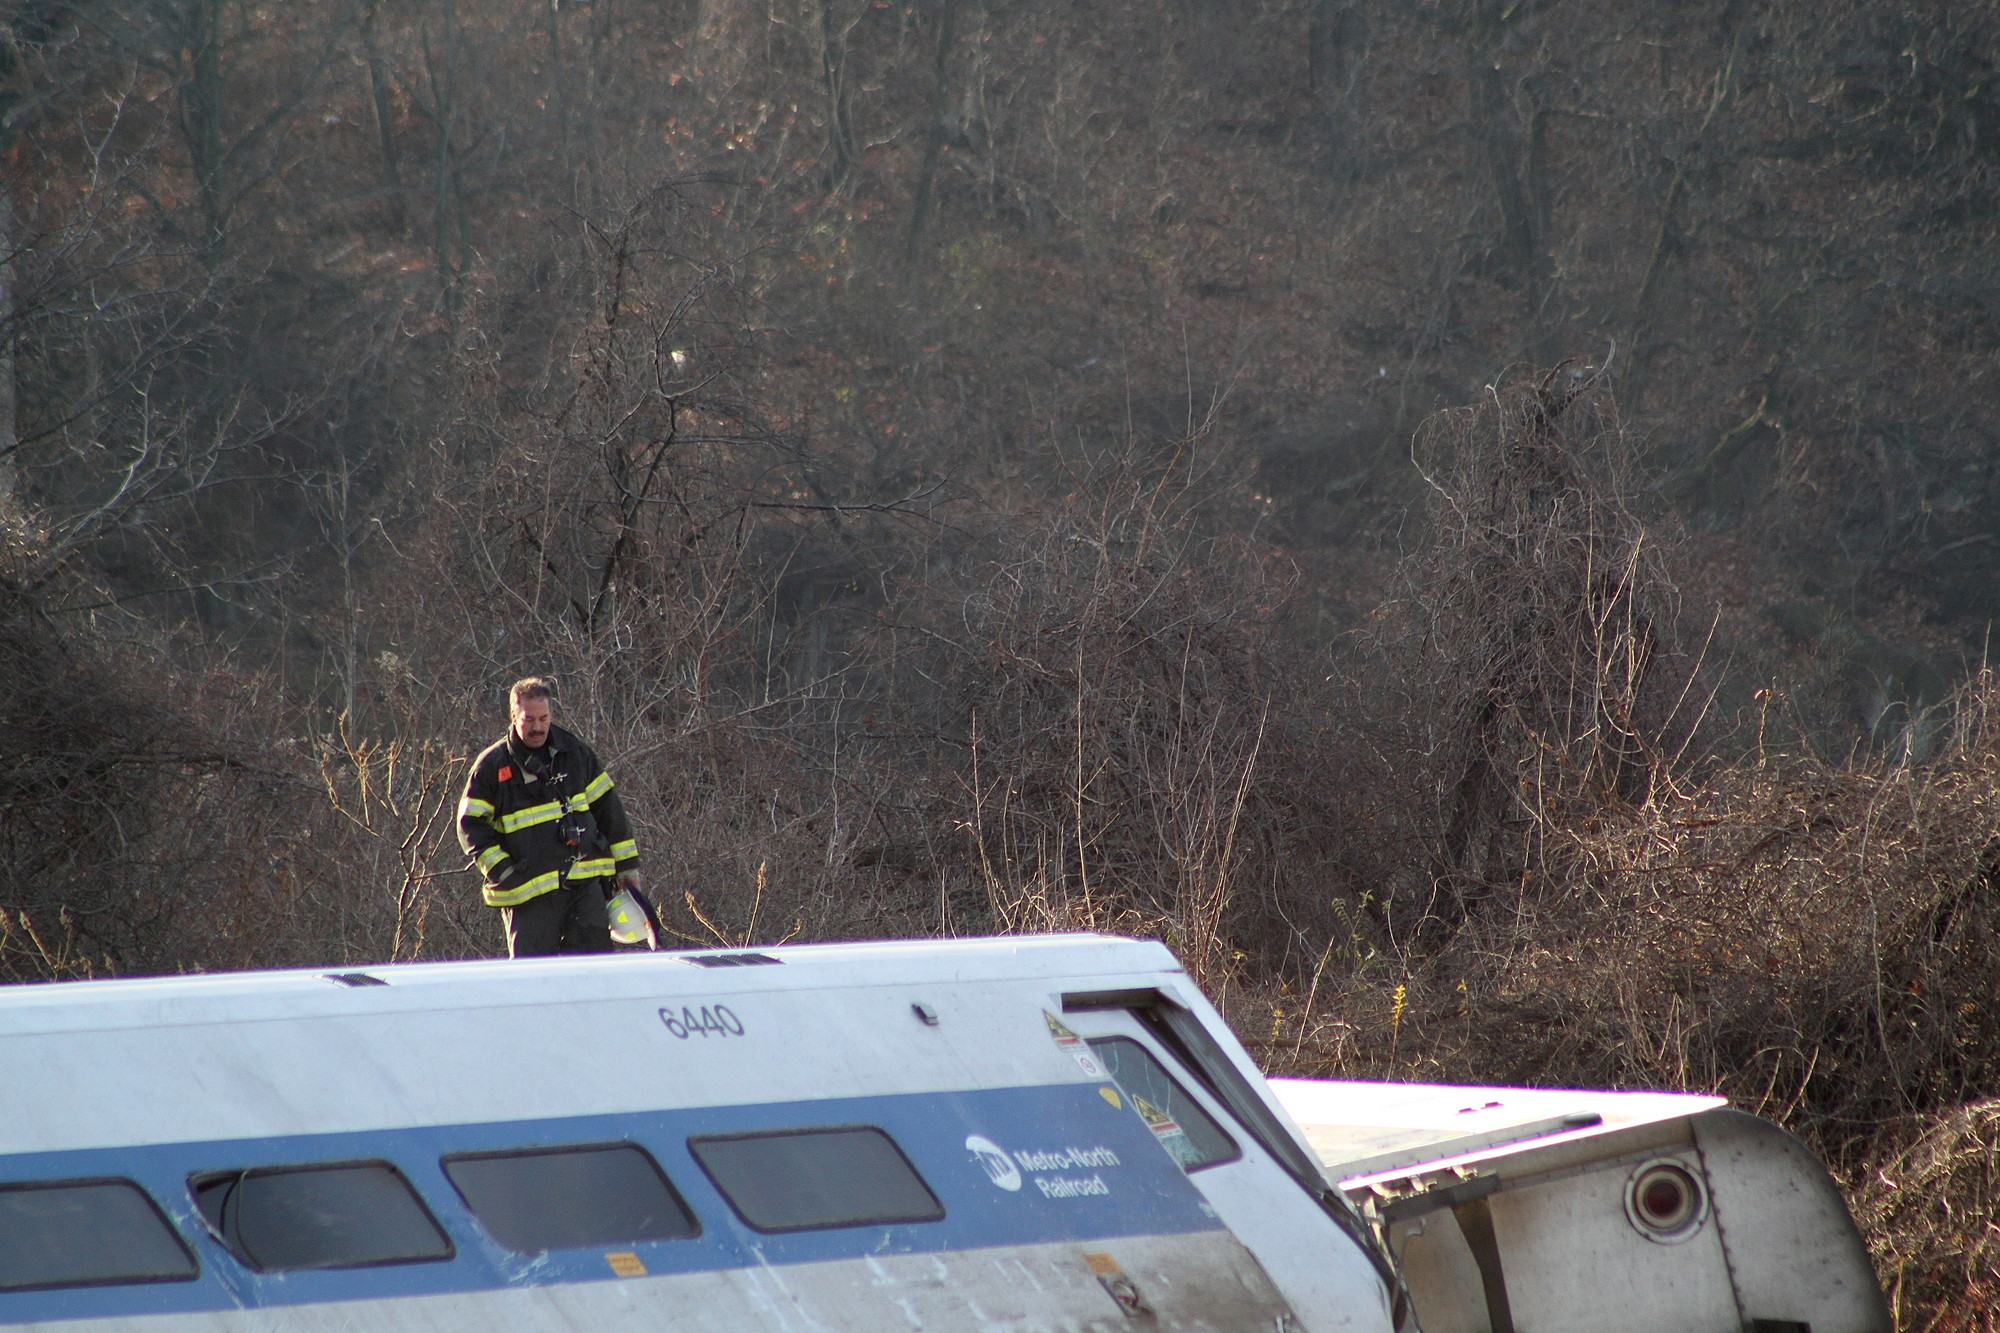 The 5:54 AM train derailed near the Spuyten Duyvil station